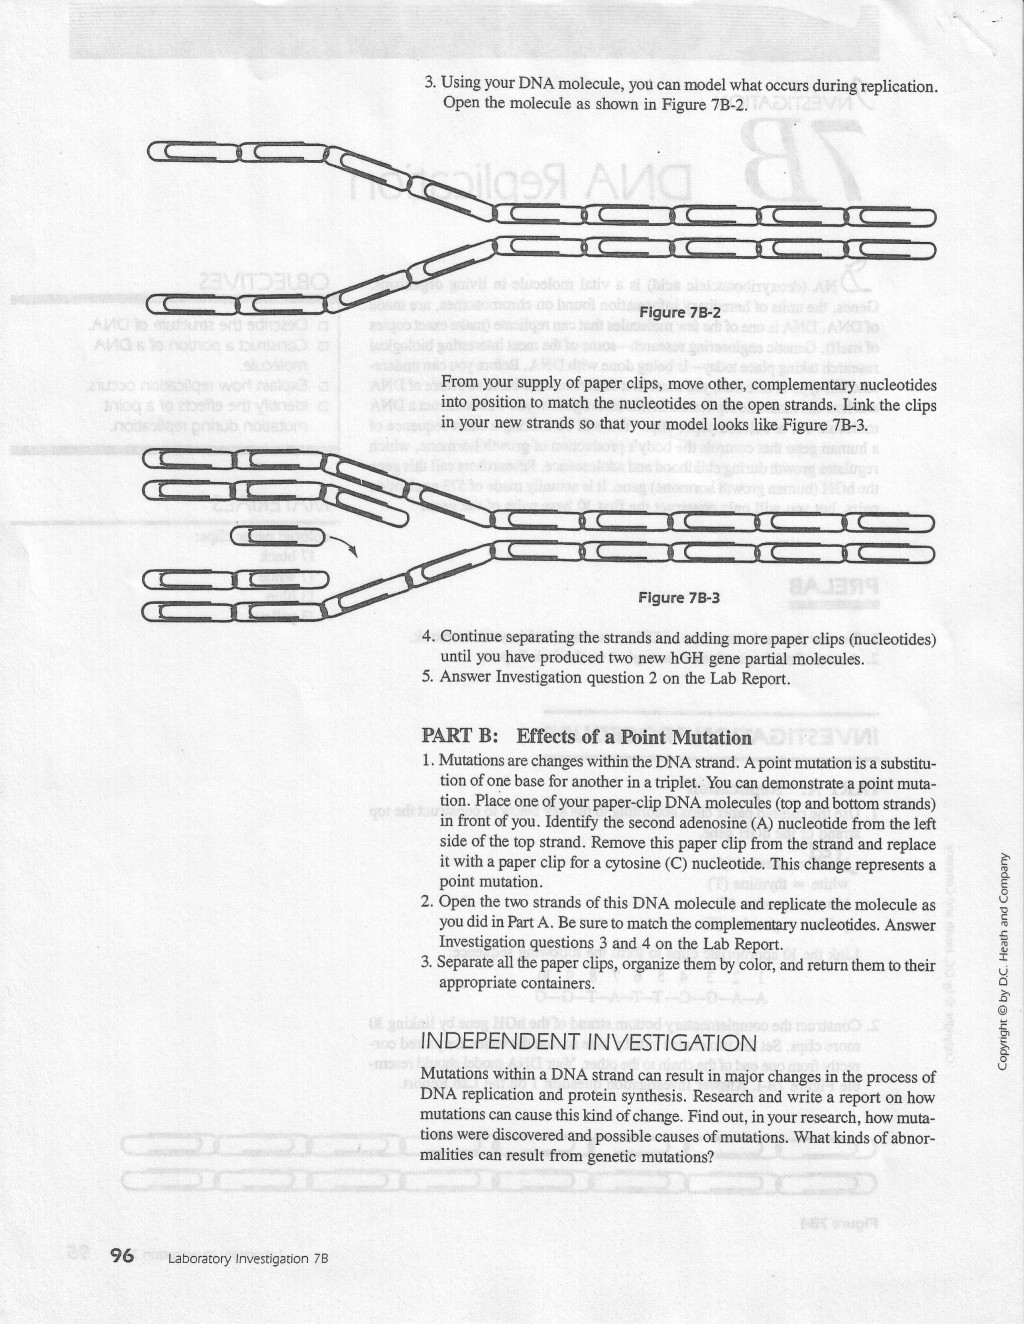 006 Brown Vs Board Of Education Essay Replicationlab2 Jpg Magnificent Conclusion Term Paper Thematic Large